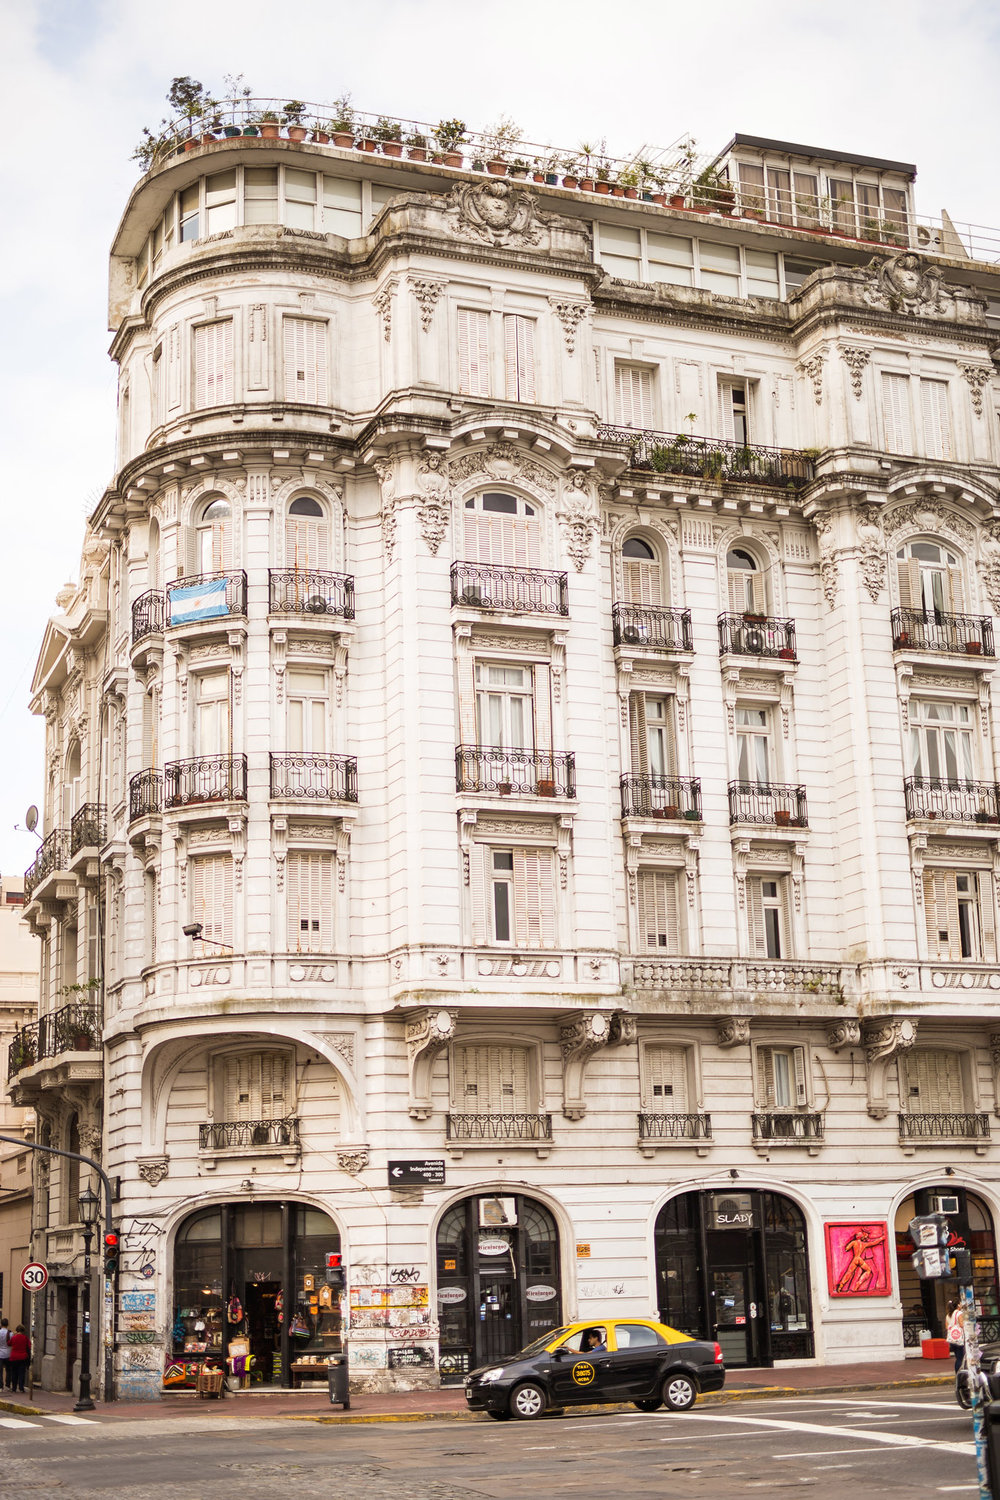 wedding-travellers-argentina-buenos-aires-san-telmo-tango-building-architecture